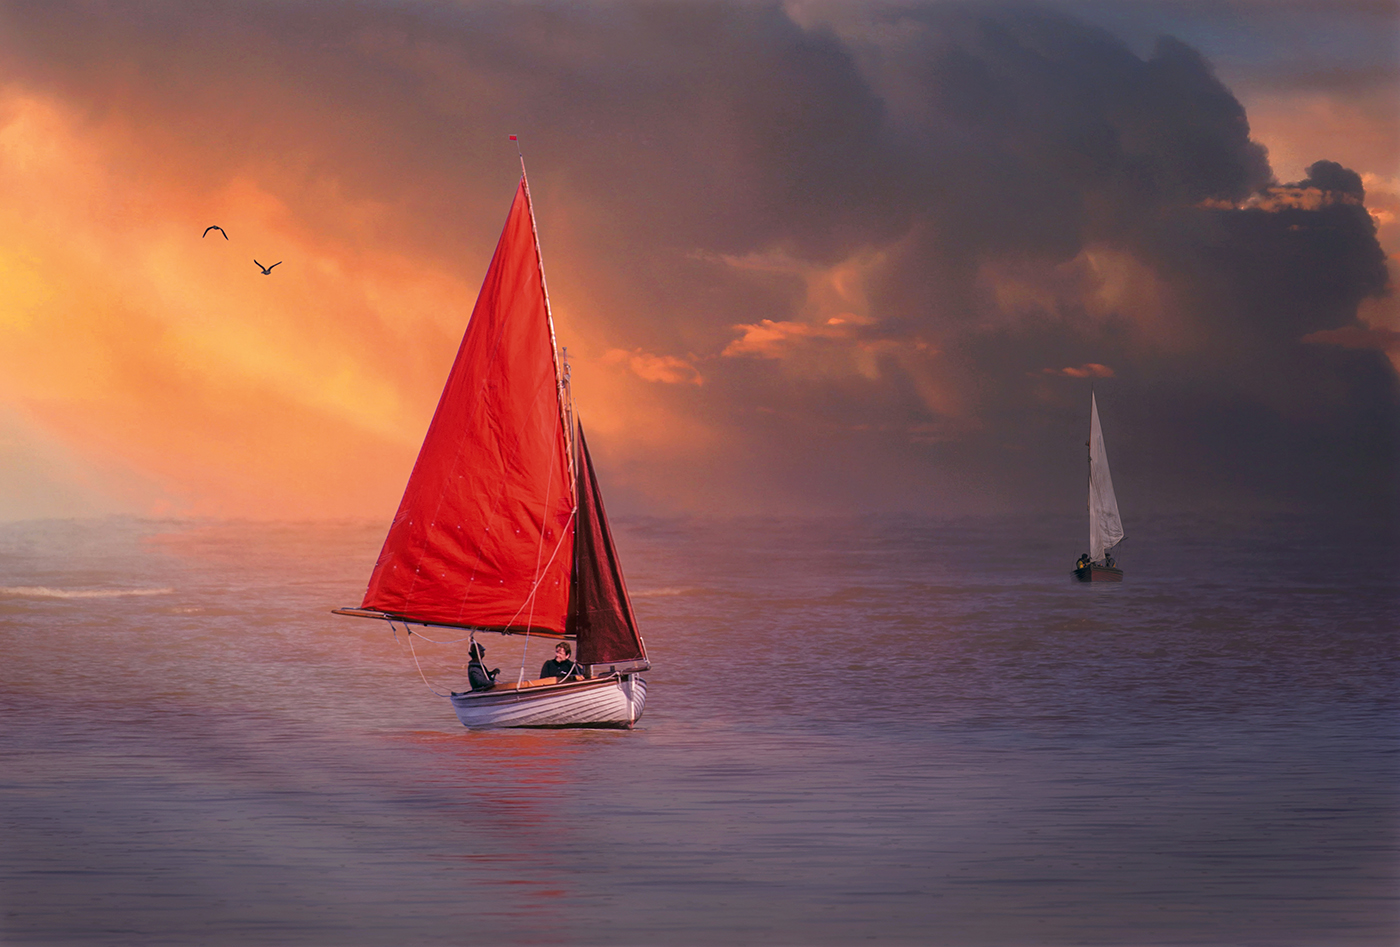 Red Sails at Sunset.jpg